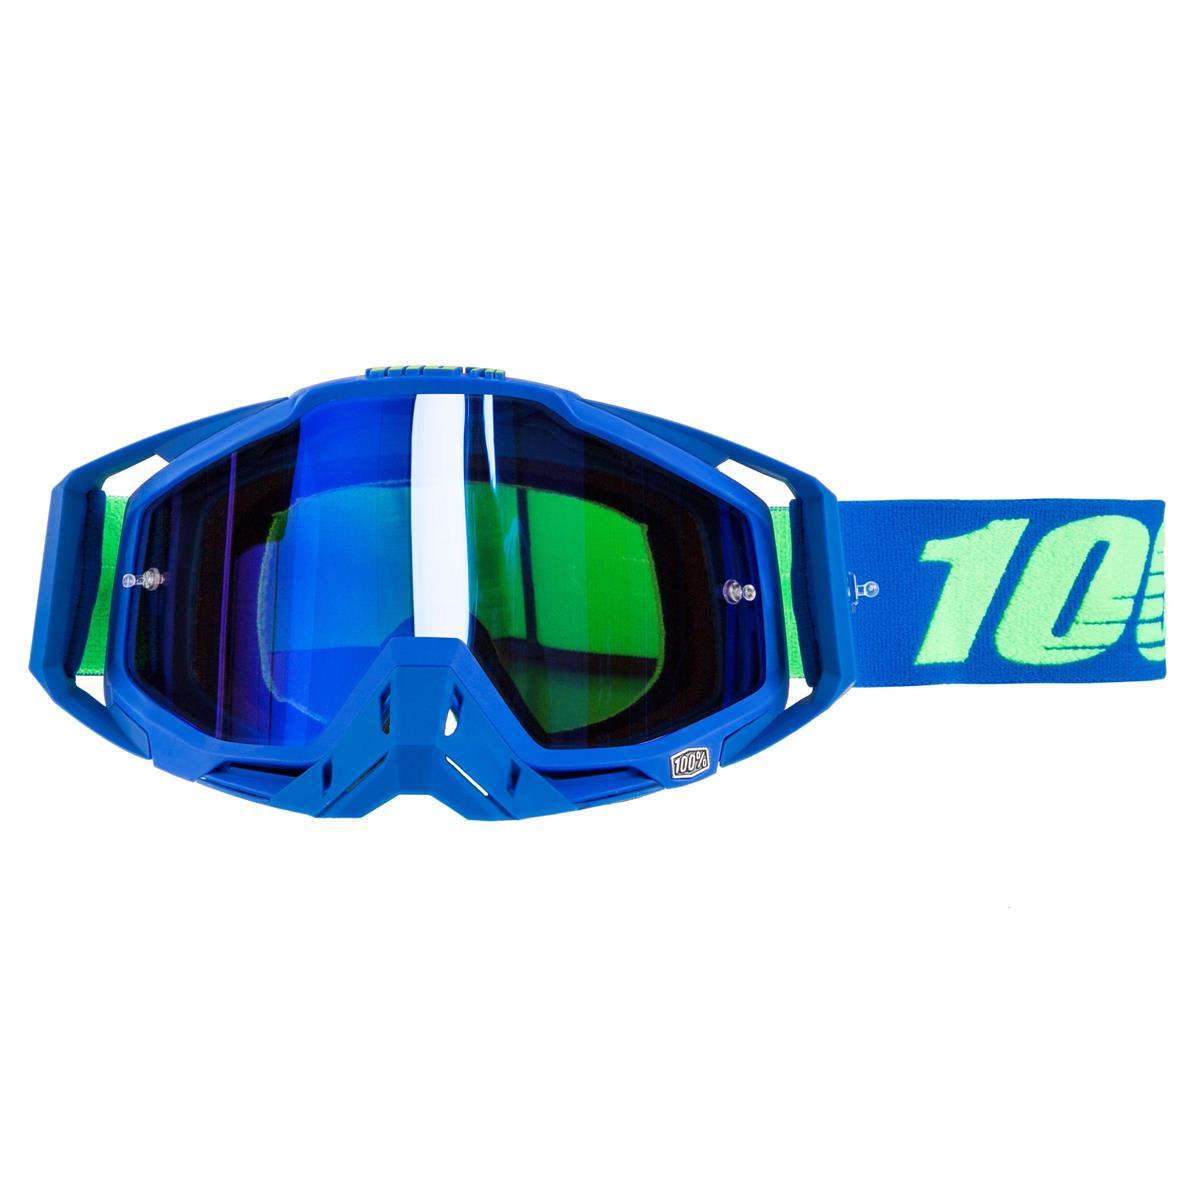 100% Goggle The Racecraft Dreamflow - Mirror Blue Anti-Fog